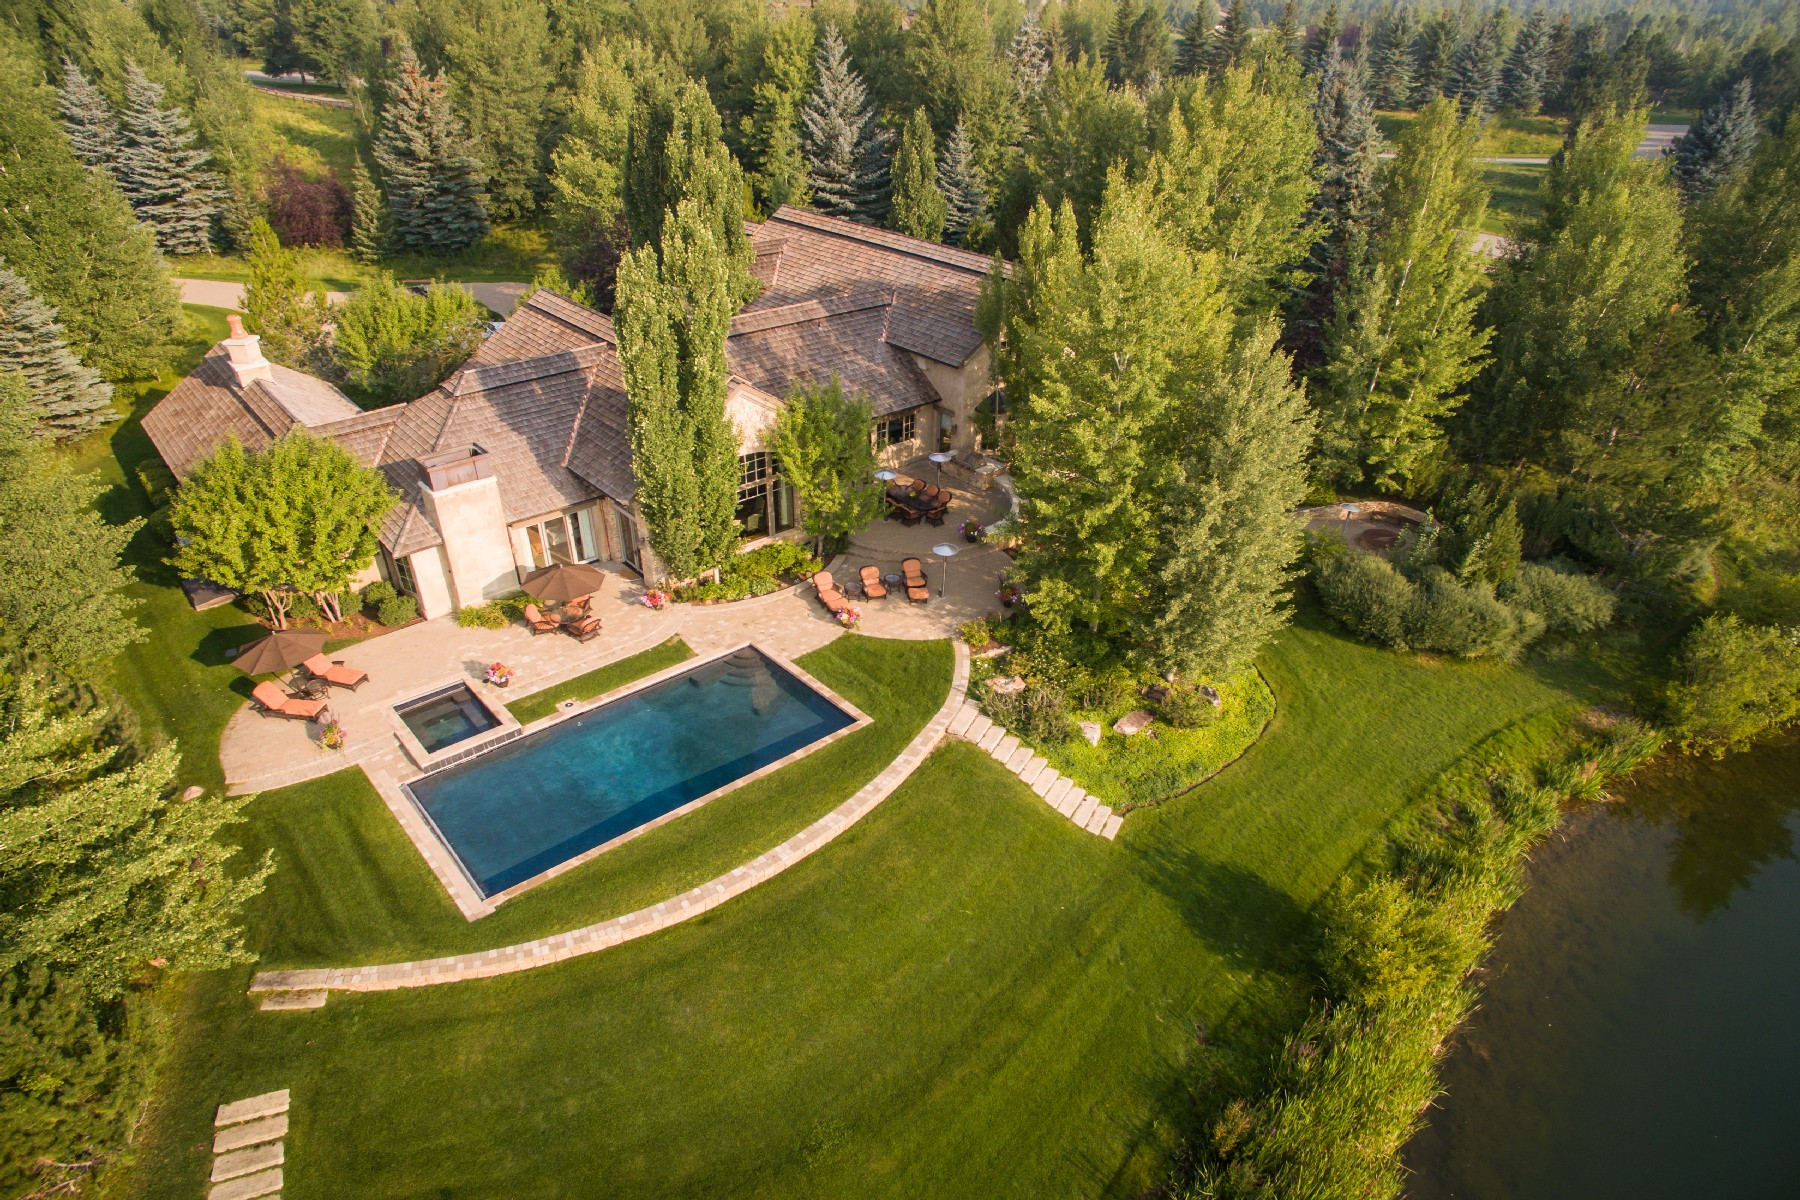 Single Family Home for Active at Exquisite Golden Eagle Lakefront Home 150 Eagle Lake Dr Hailey, Idaho 83333 United States